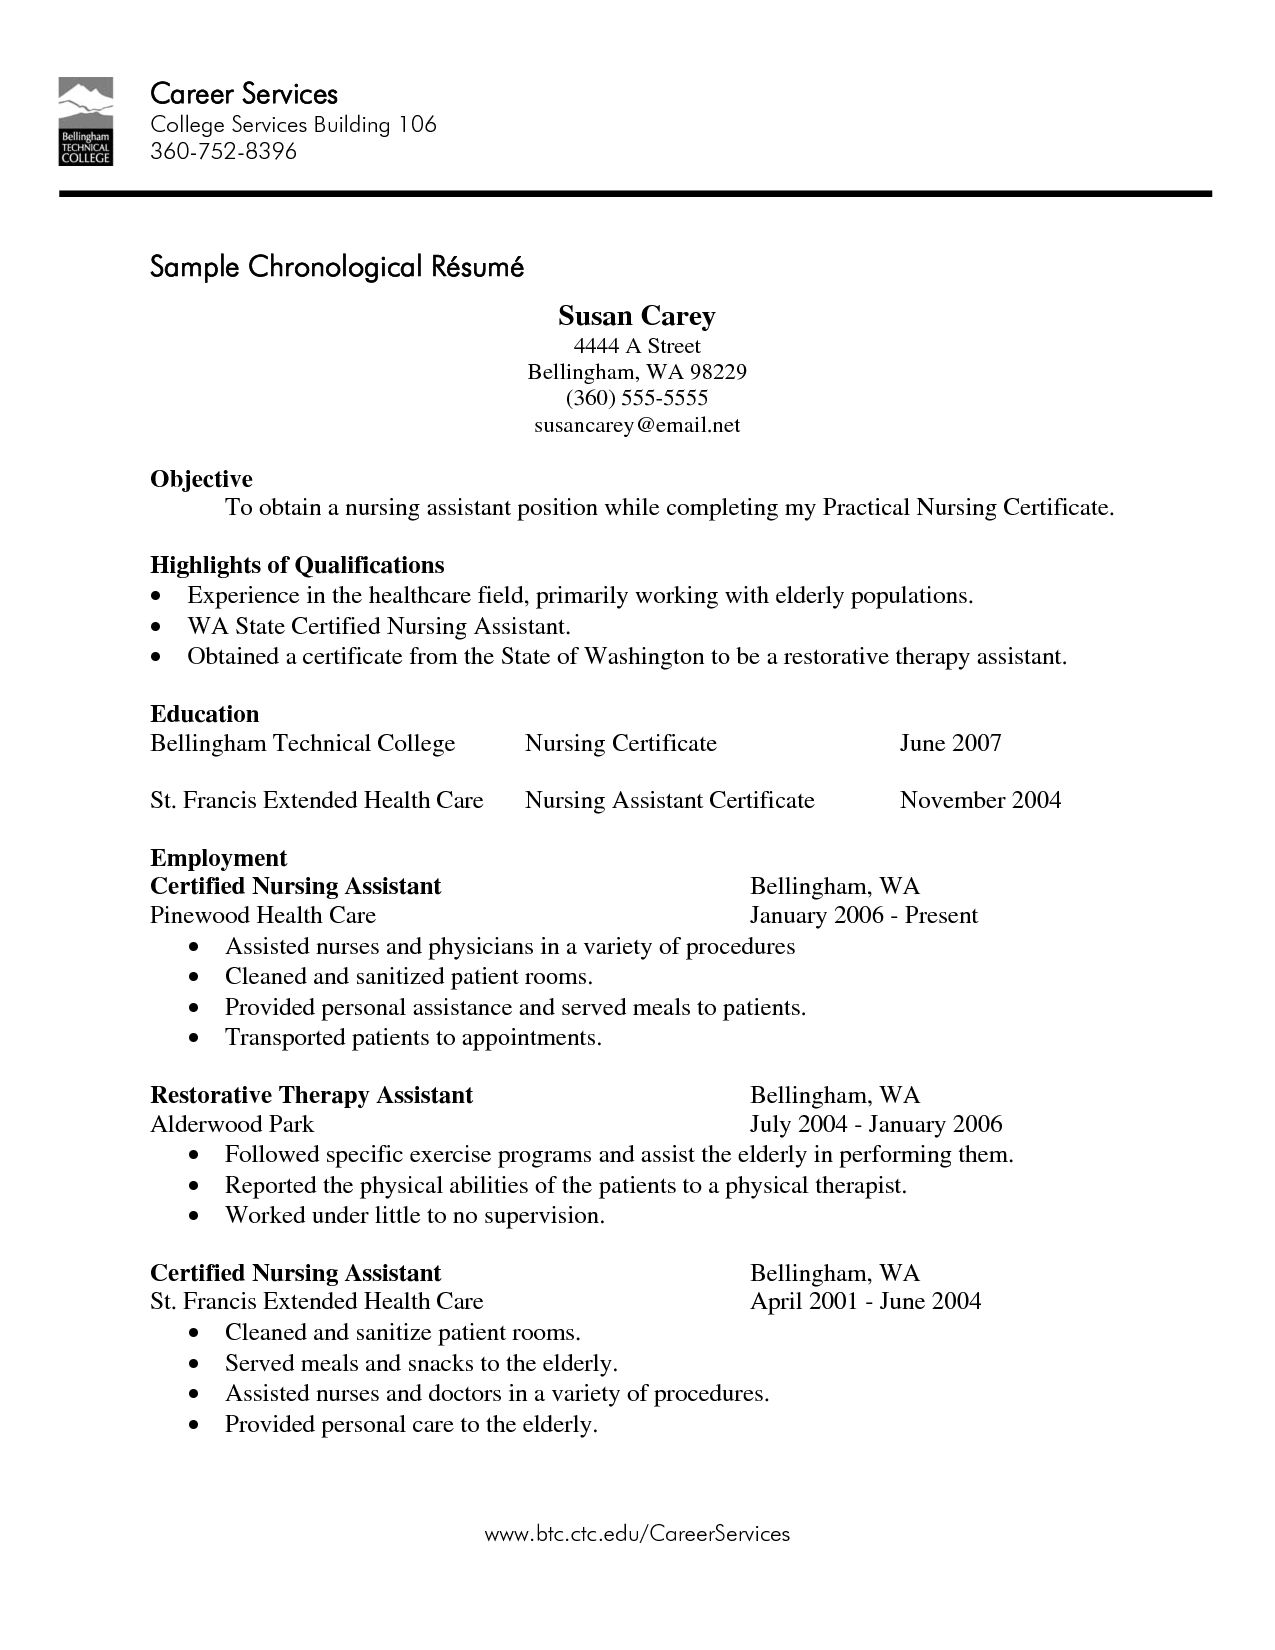 Sample Resume Nursing Assistant Cna Resume Sampleml Experience Template Design  Resume Templates .